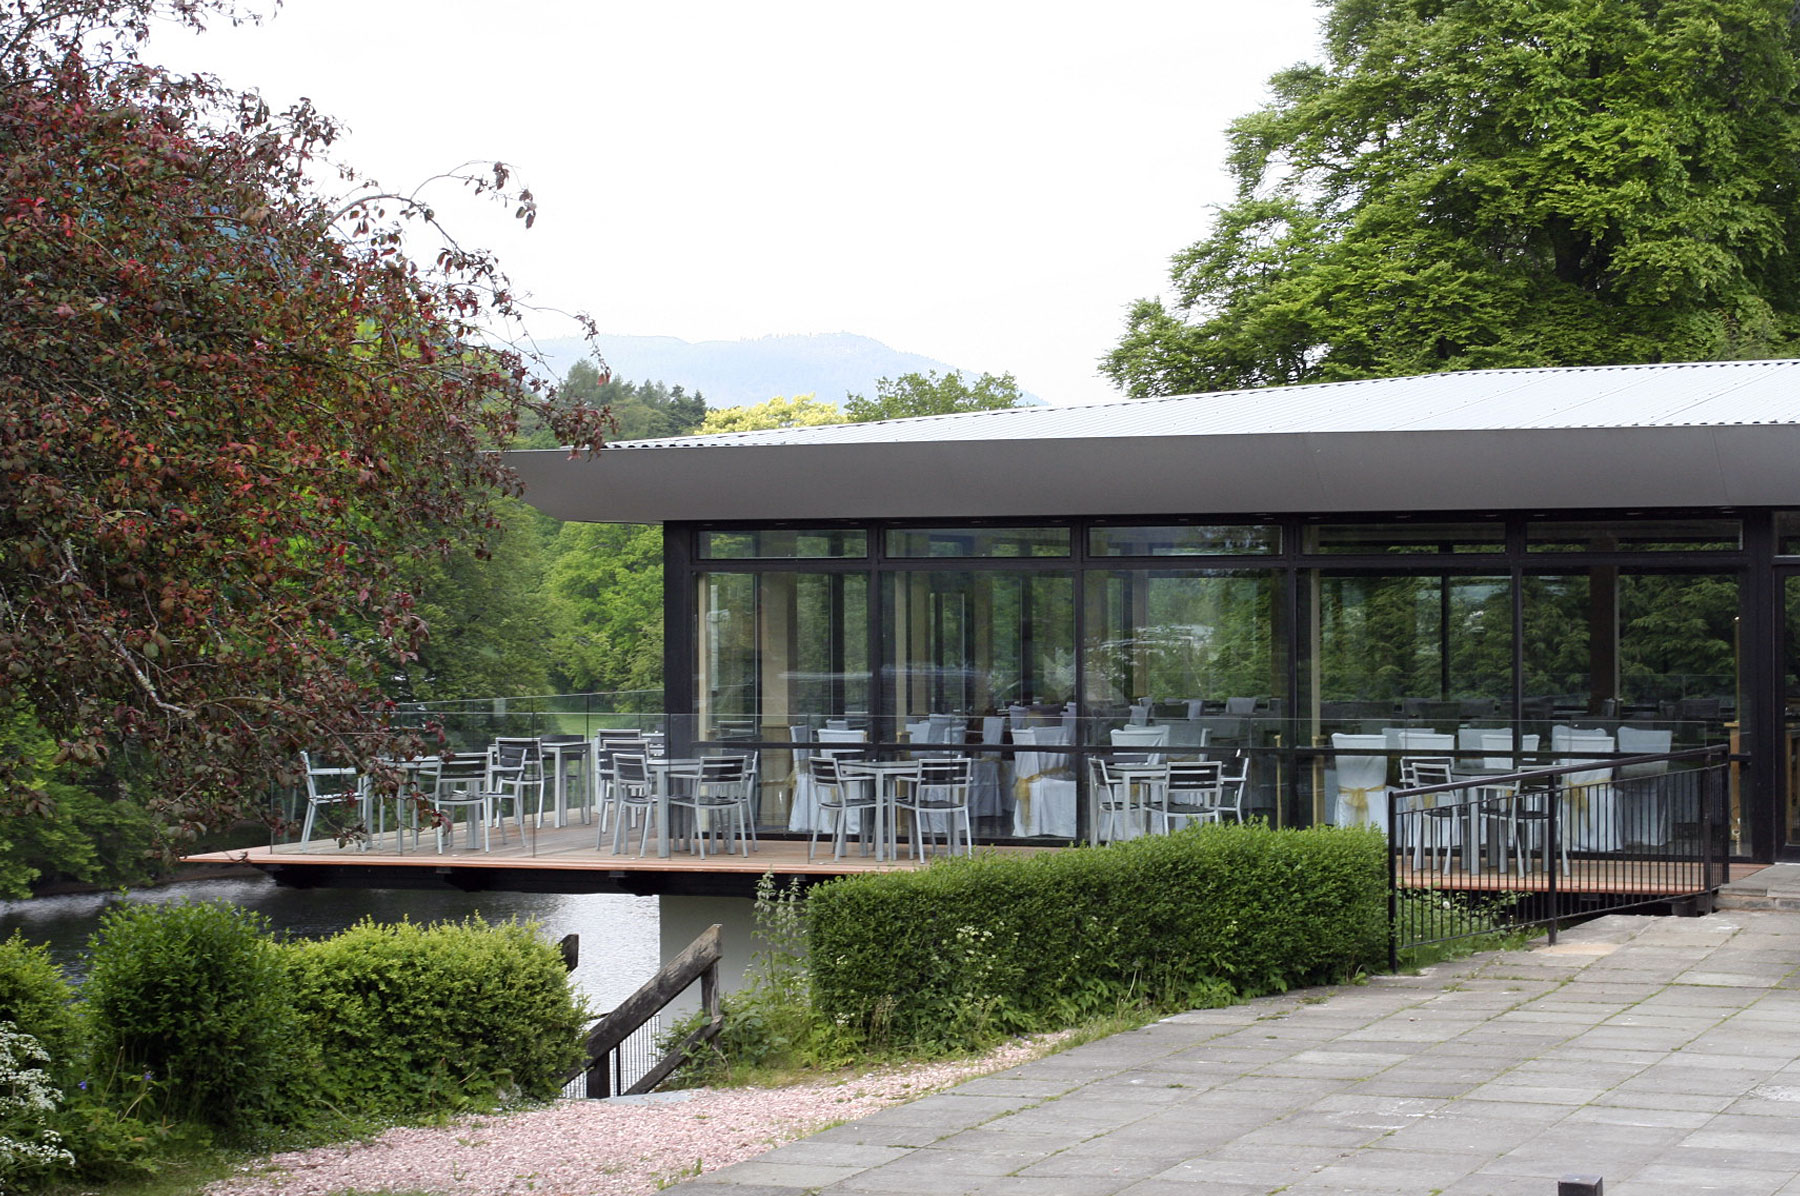 Waterside cafe architecture